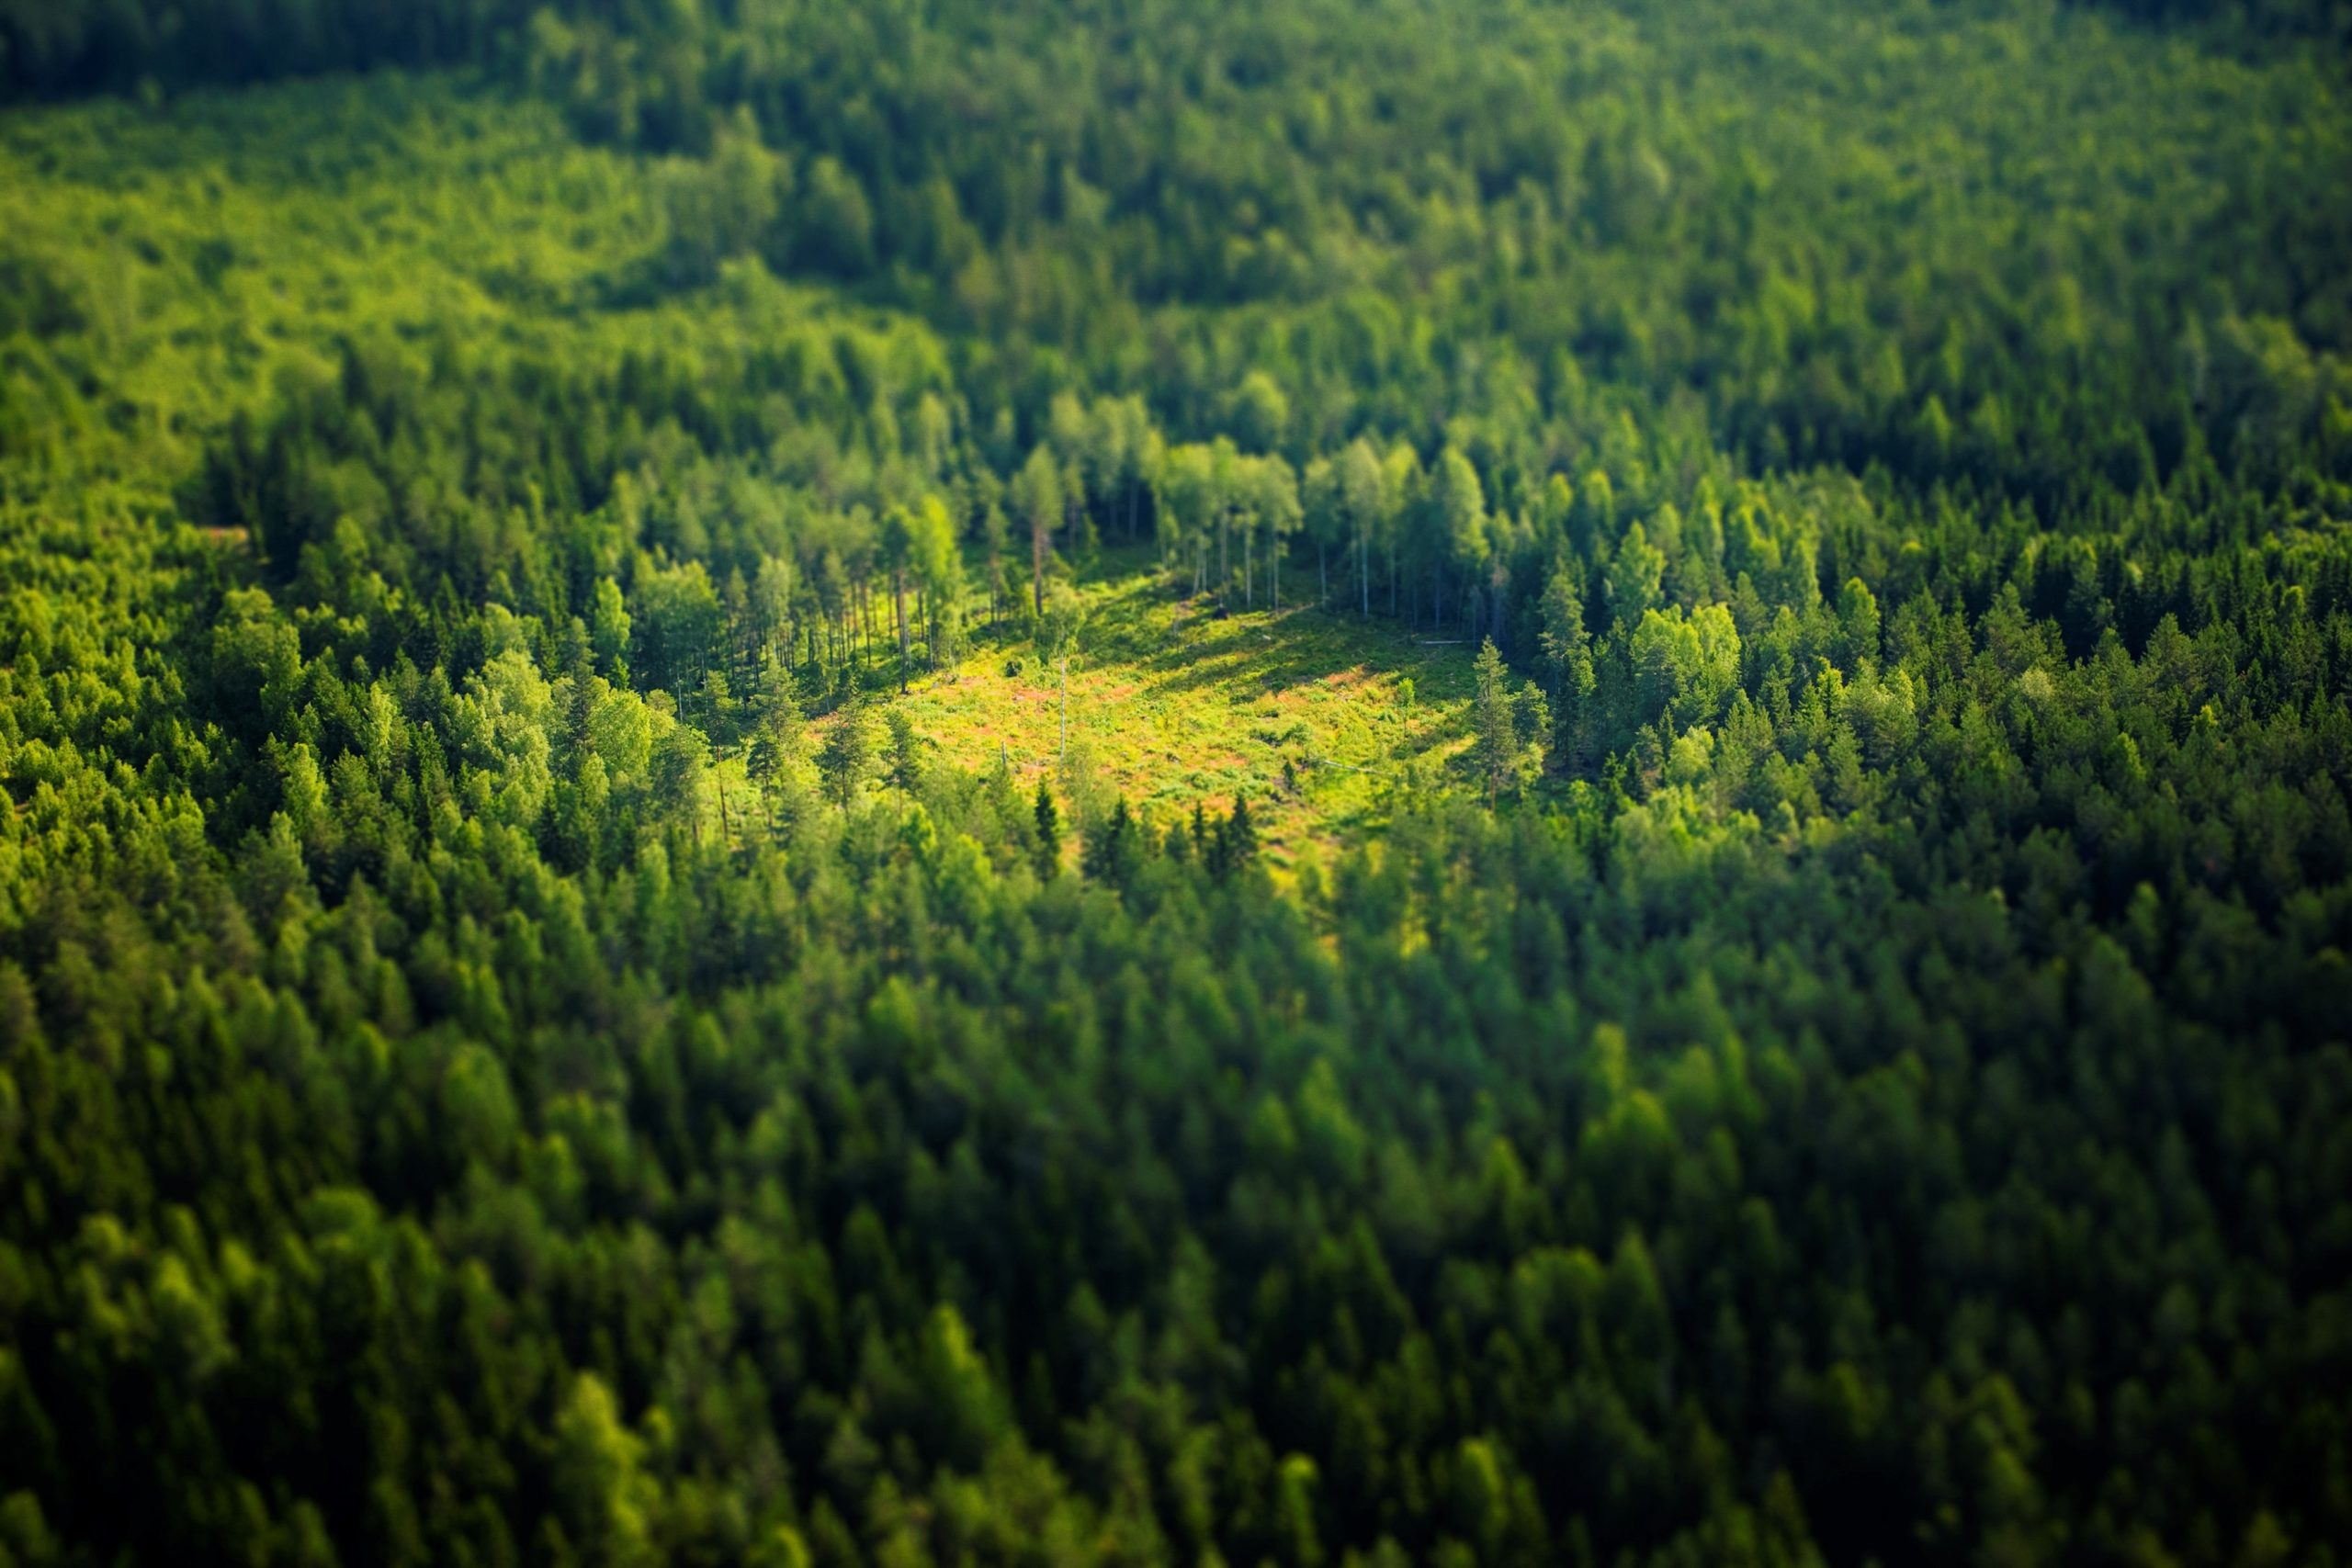 Forest glade seen from above. Photo.